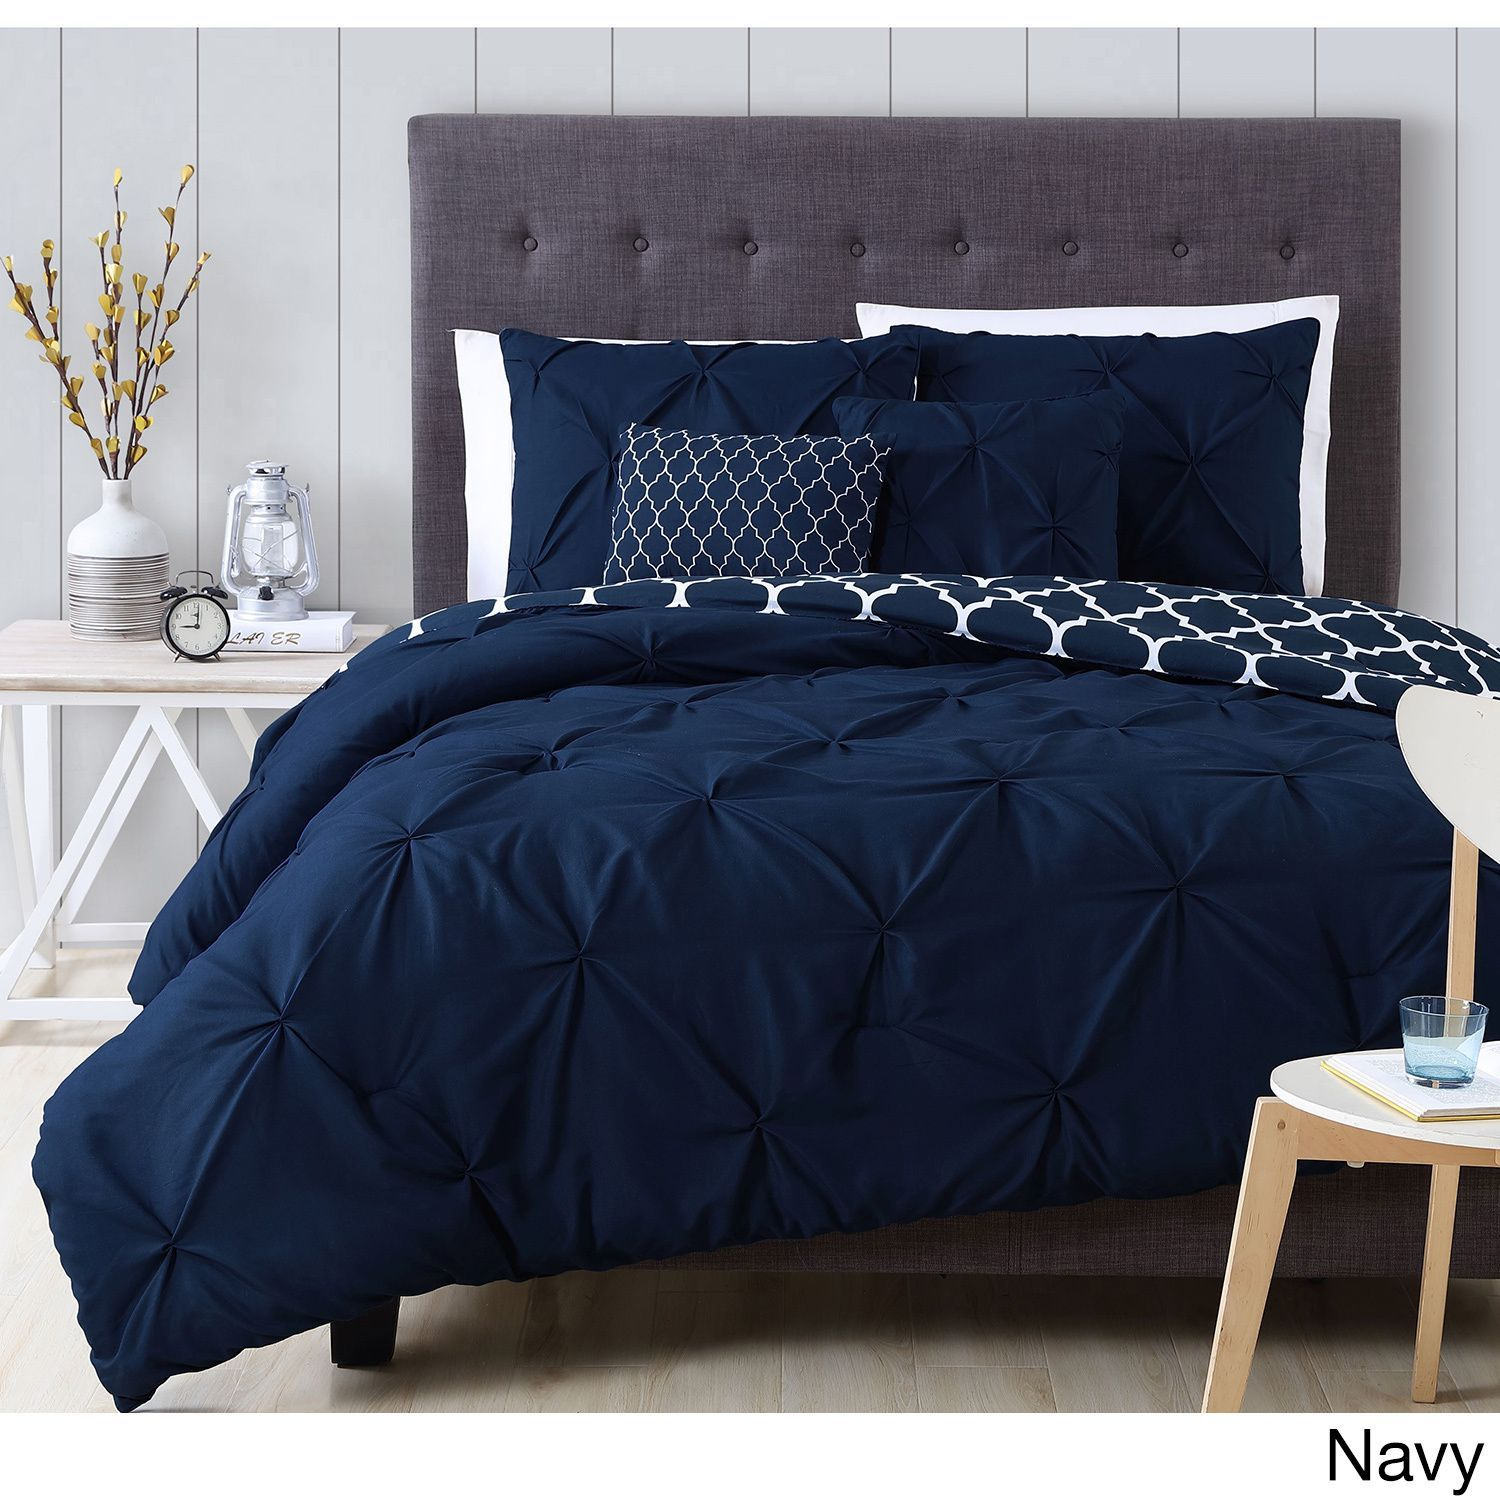 Avondale Manor Madrid 5 Piece Comforter Set Overstock